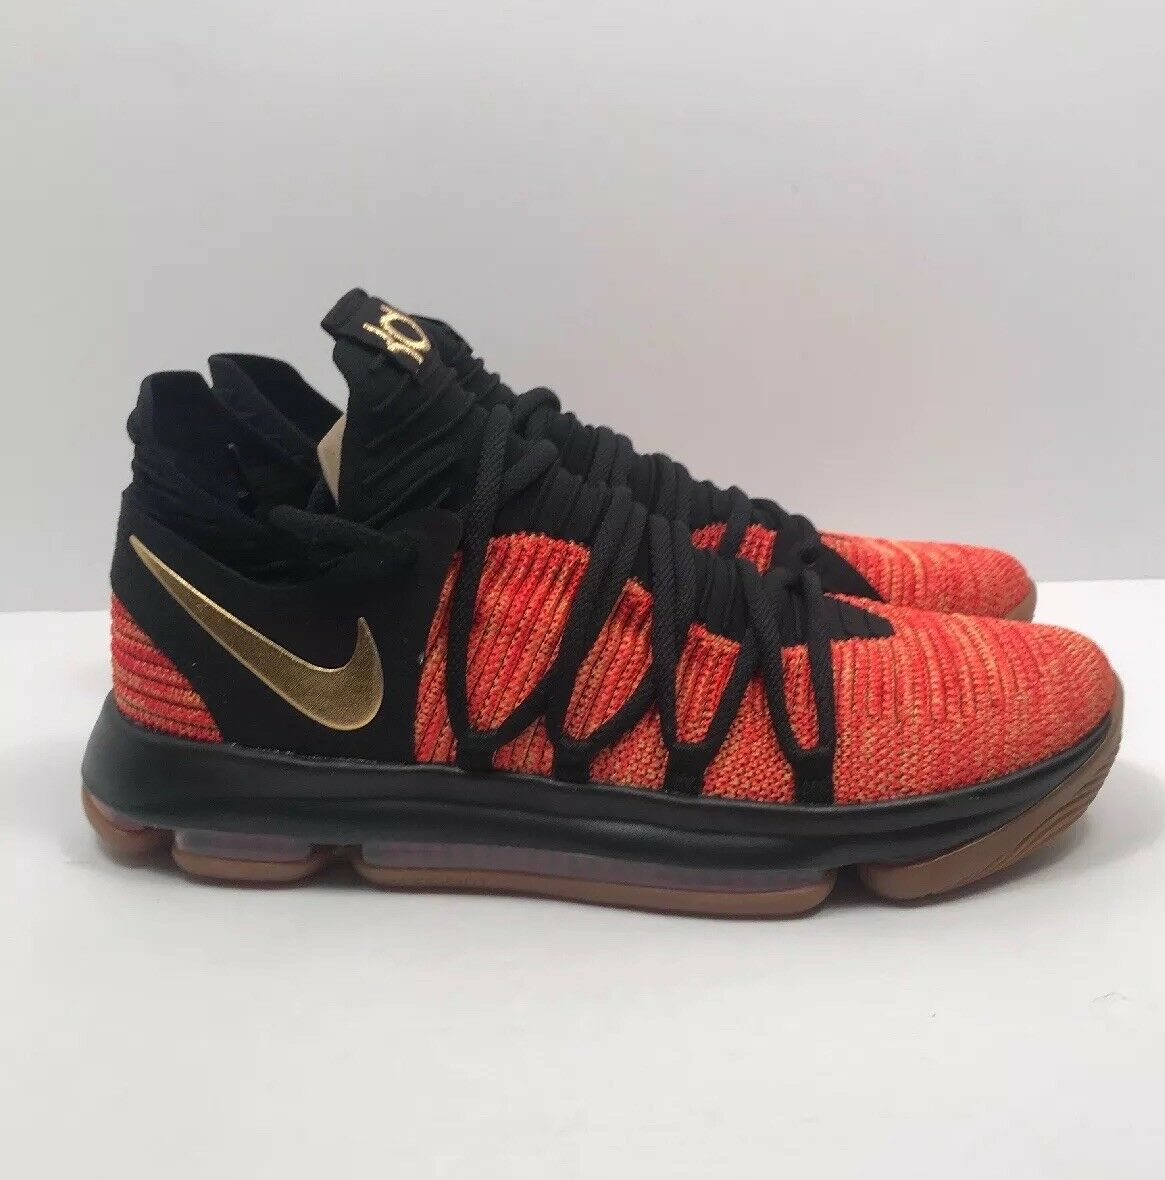 NEW NIKE ZOOM KD10 ID ID ID NFS BASKETBALL SHOES MENS SIZE 11 KEVIN DURANT RARE 8bf3a1